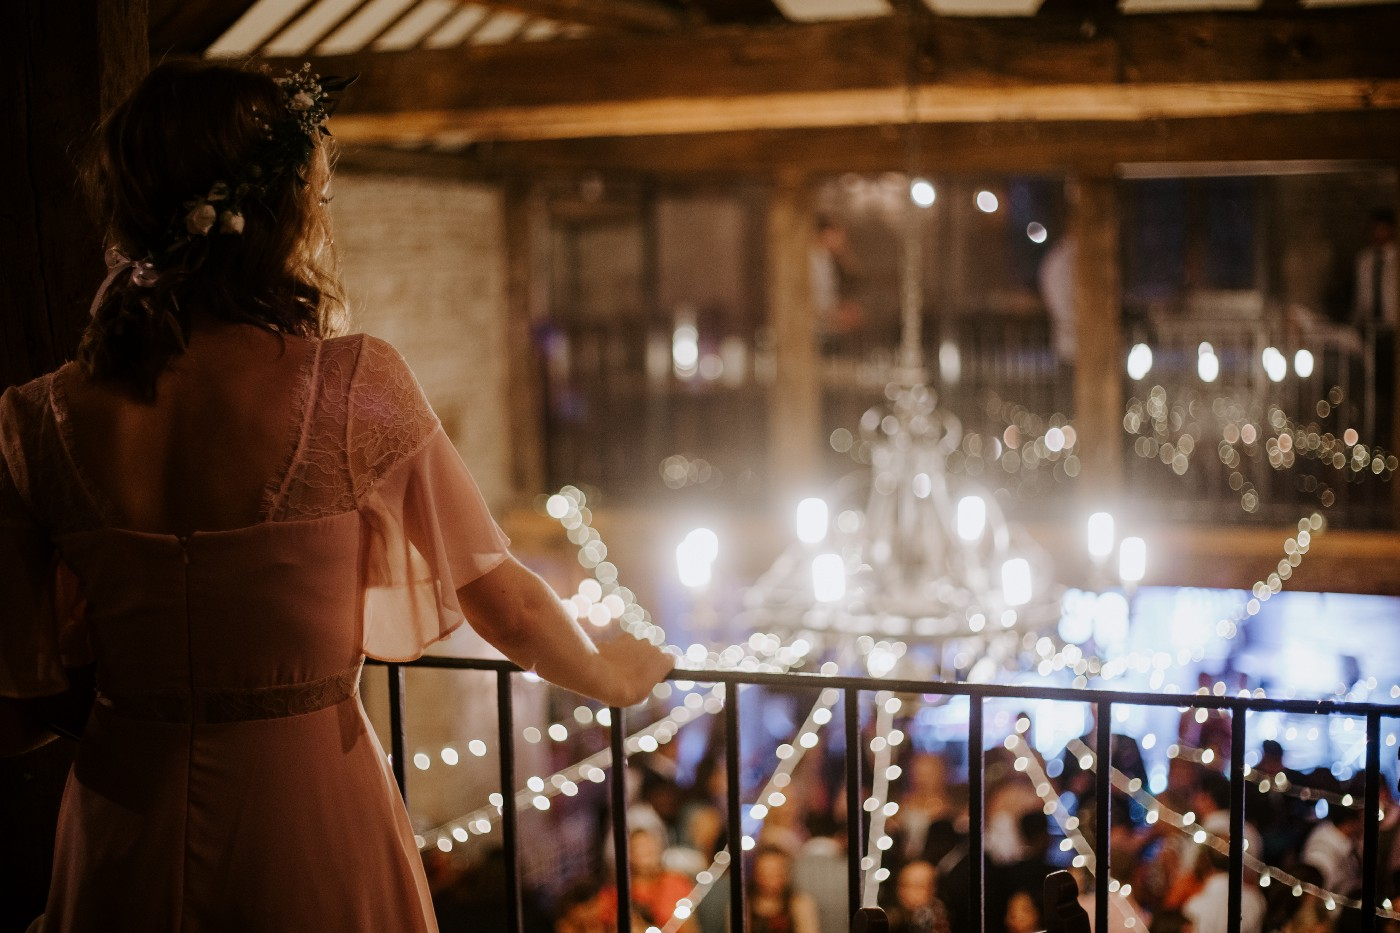 Photo of a woman in a pink dress looking over a balcony railing past fairy lights and a chandelier into a formal event.